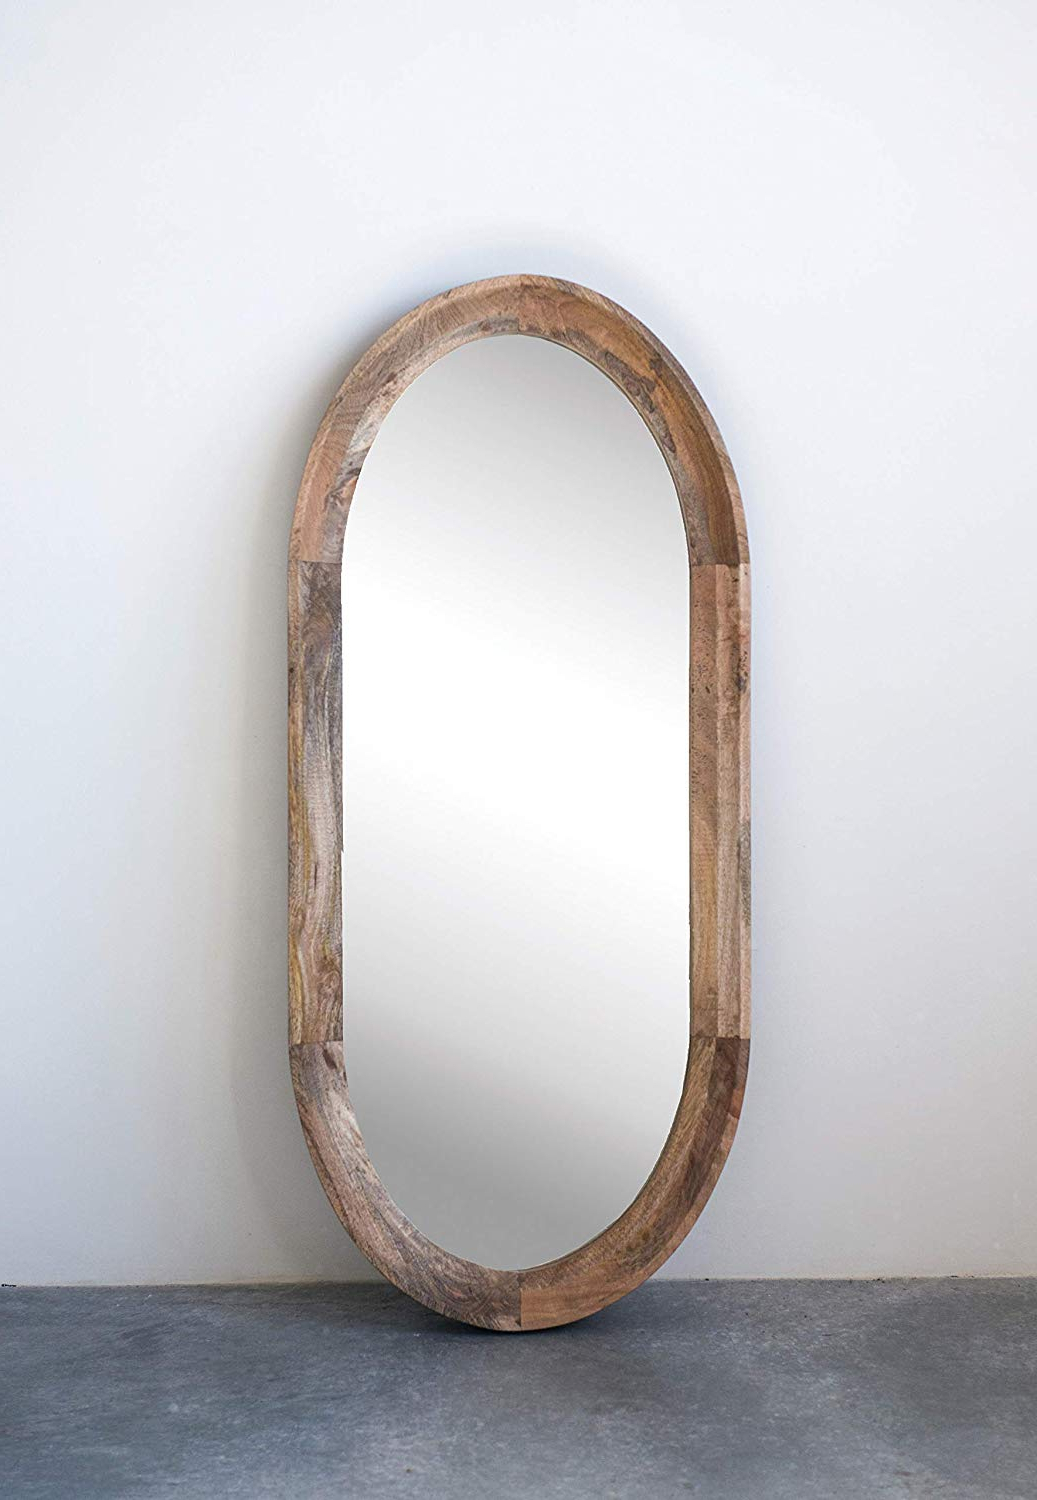 Creative Co Op Oval Wall Mirror With Mango Wood Frame Regarding Most Popular Oval Wall Mirrors (View 11 of 20)